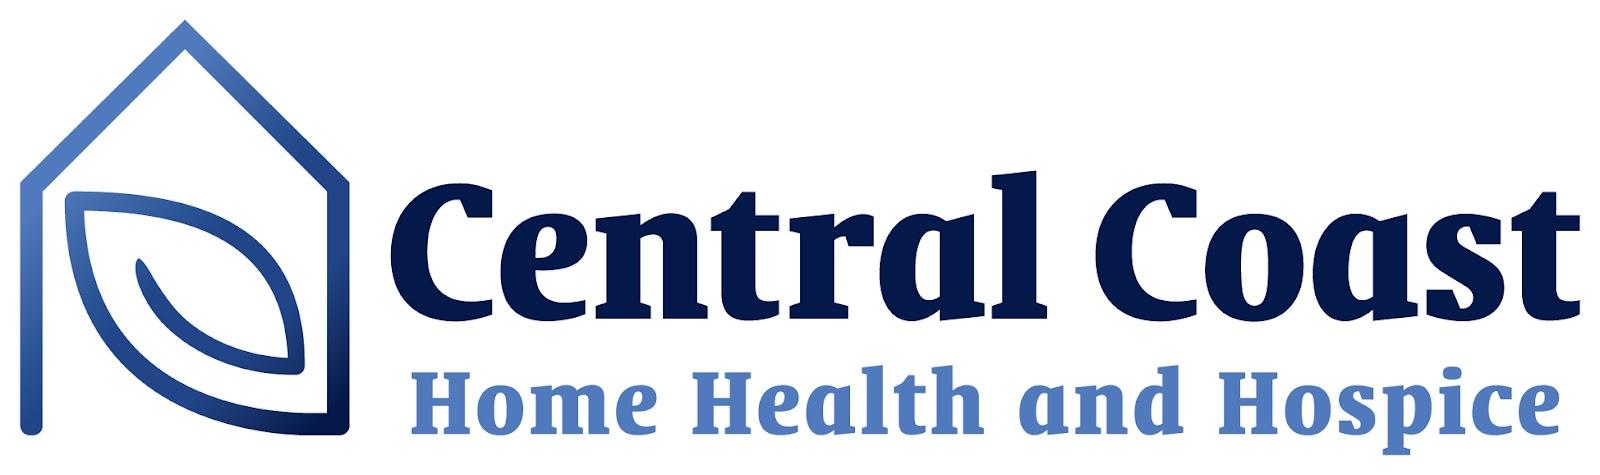 Central Coast Health Hospice_logo_land_lght_4color.jpg